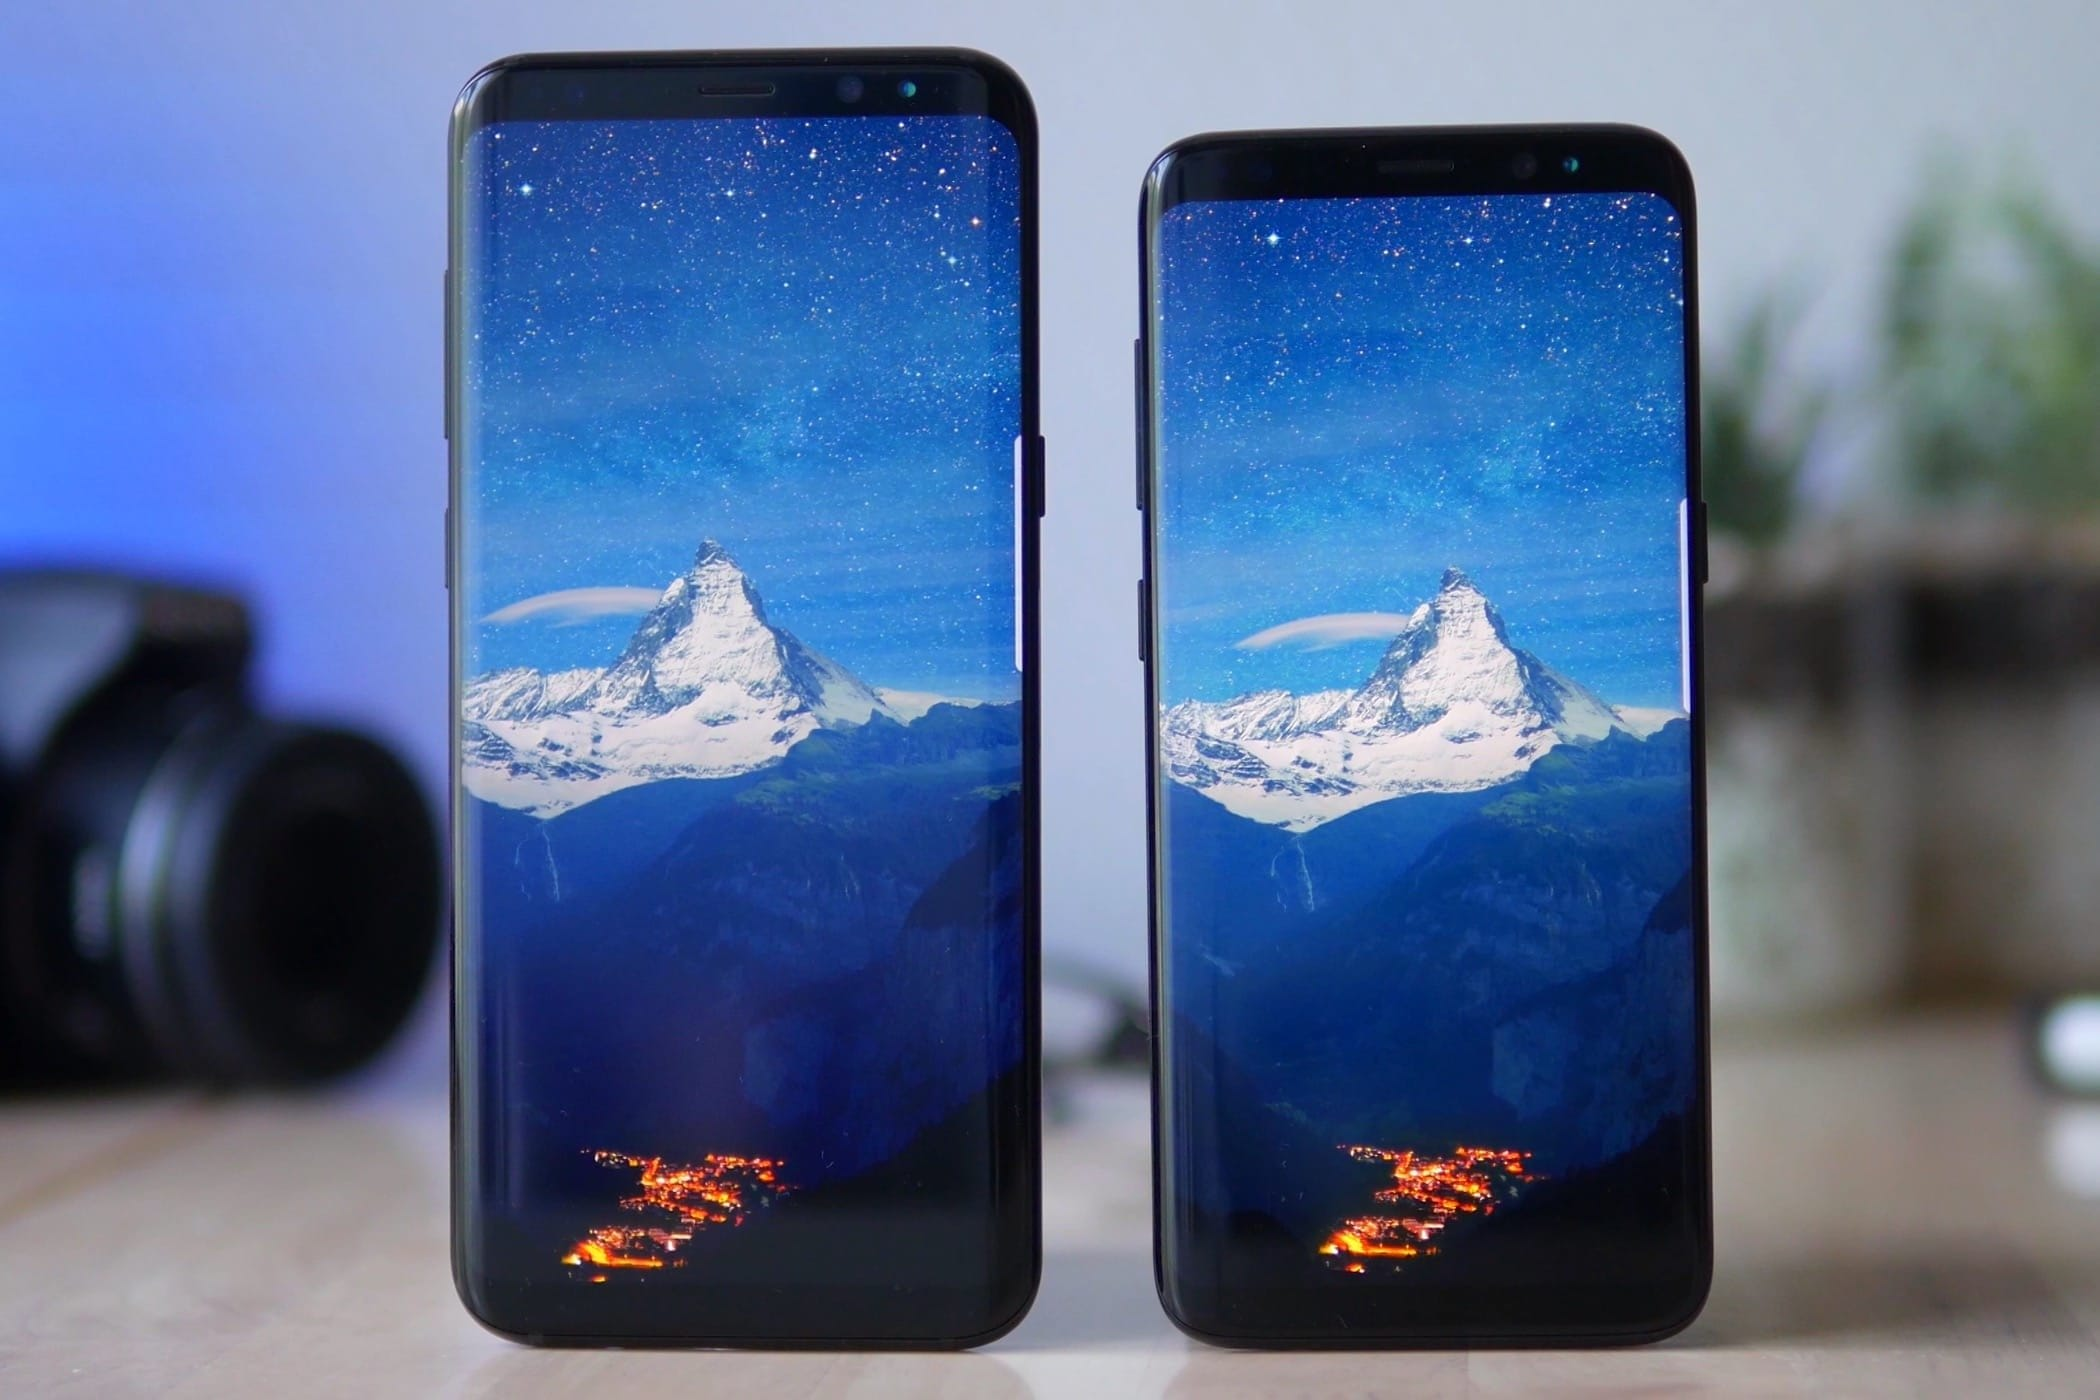 design and display samsung galaxy s9 and s9 the - HD 2100×1400